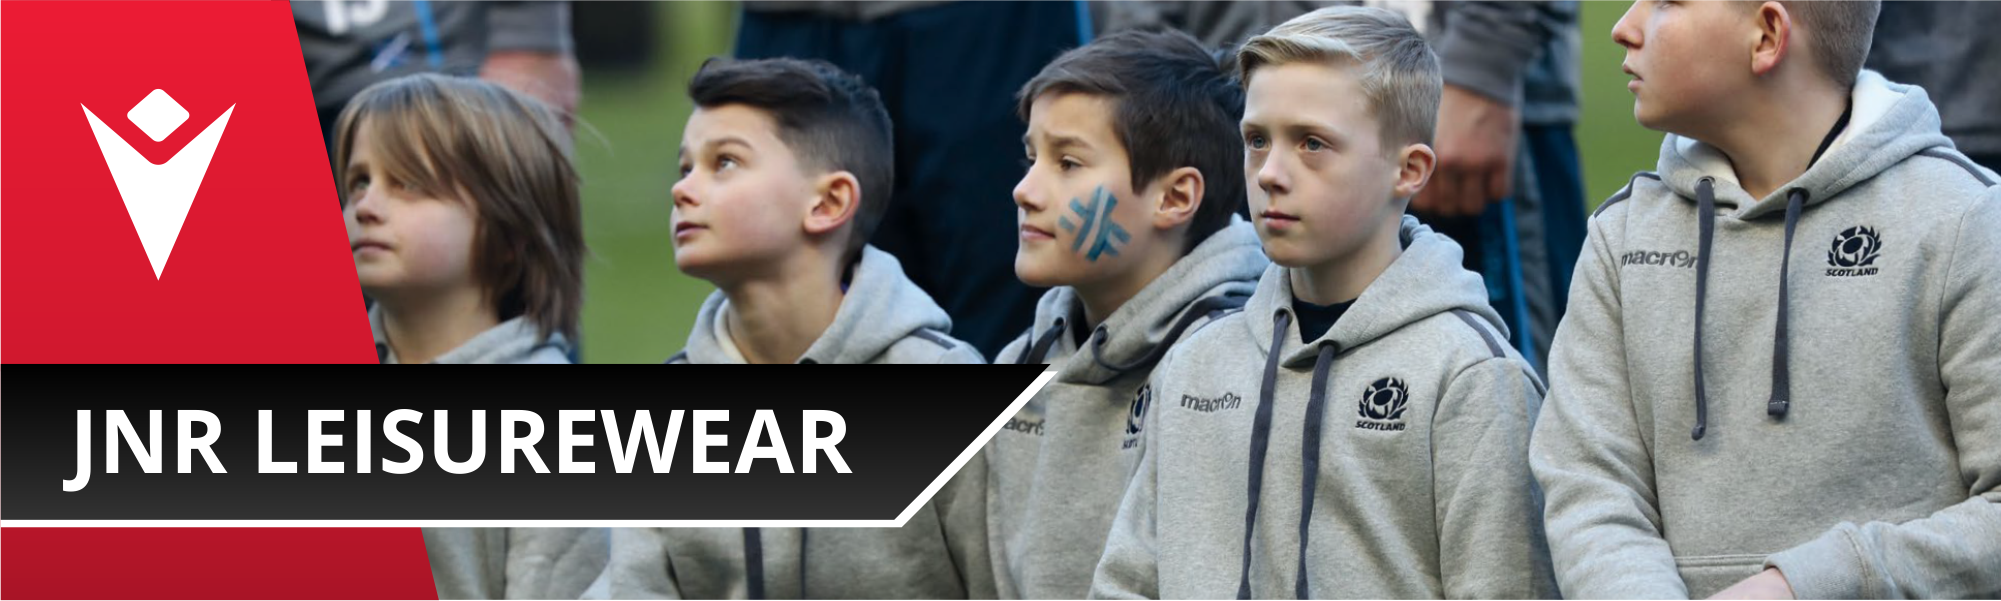 jnr-leisurewear-banner.png